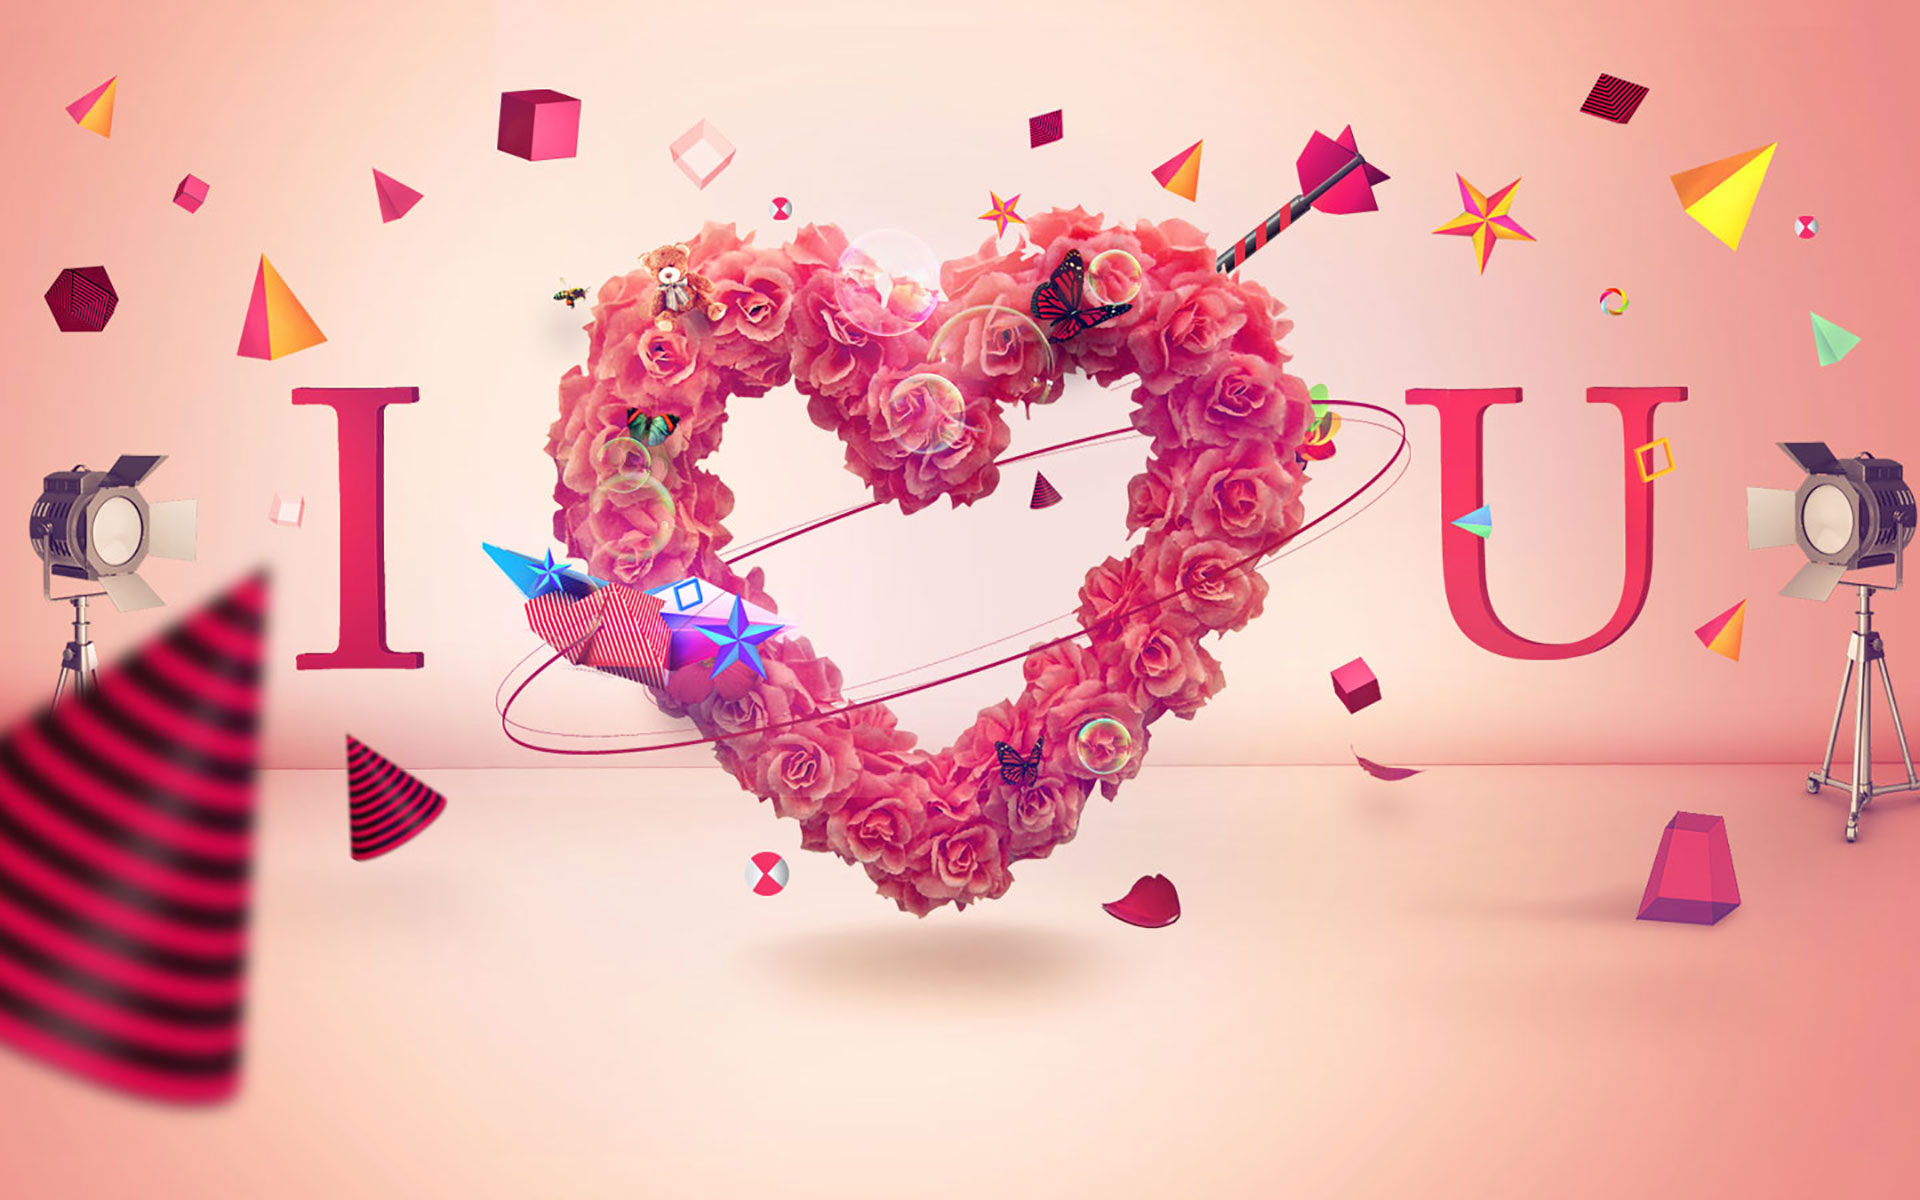 I Love U HD Wallpapers Free Download